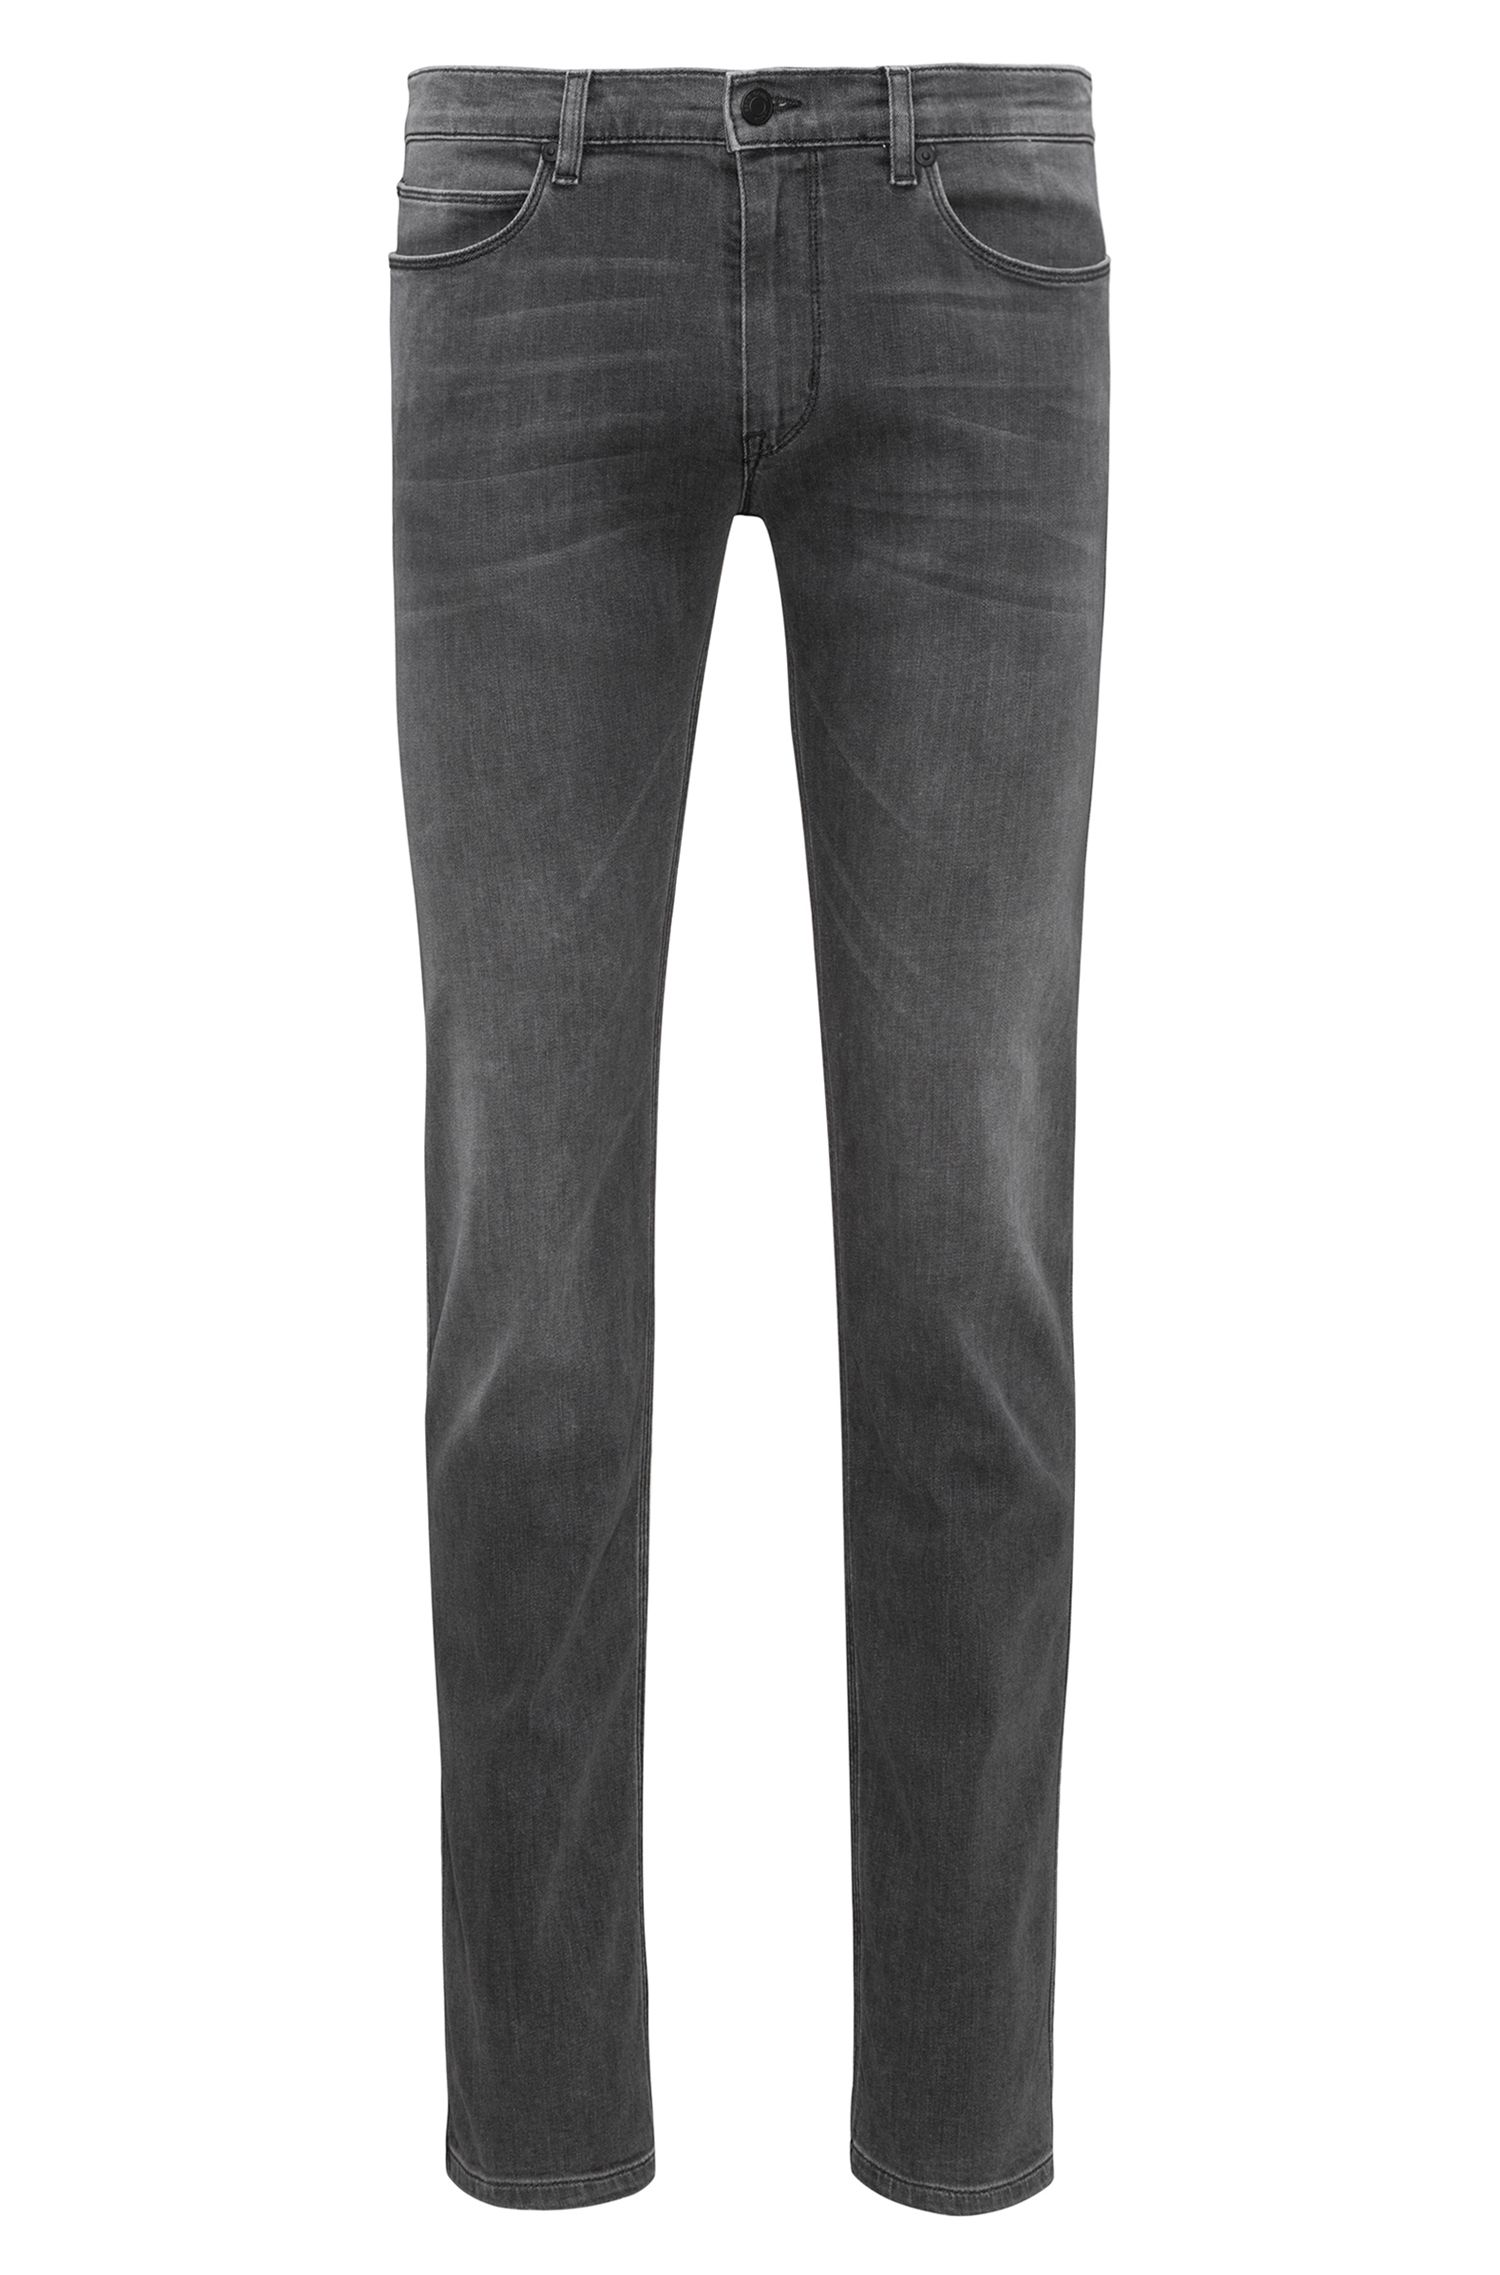 Hugo Boss - Slim-fit jeans in mid-grey stretch denim - 1